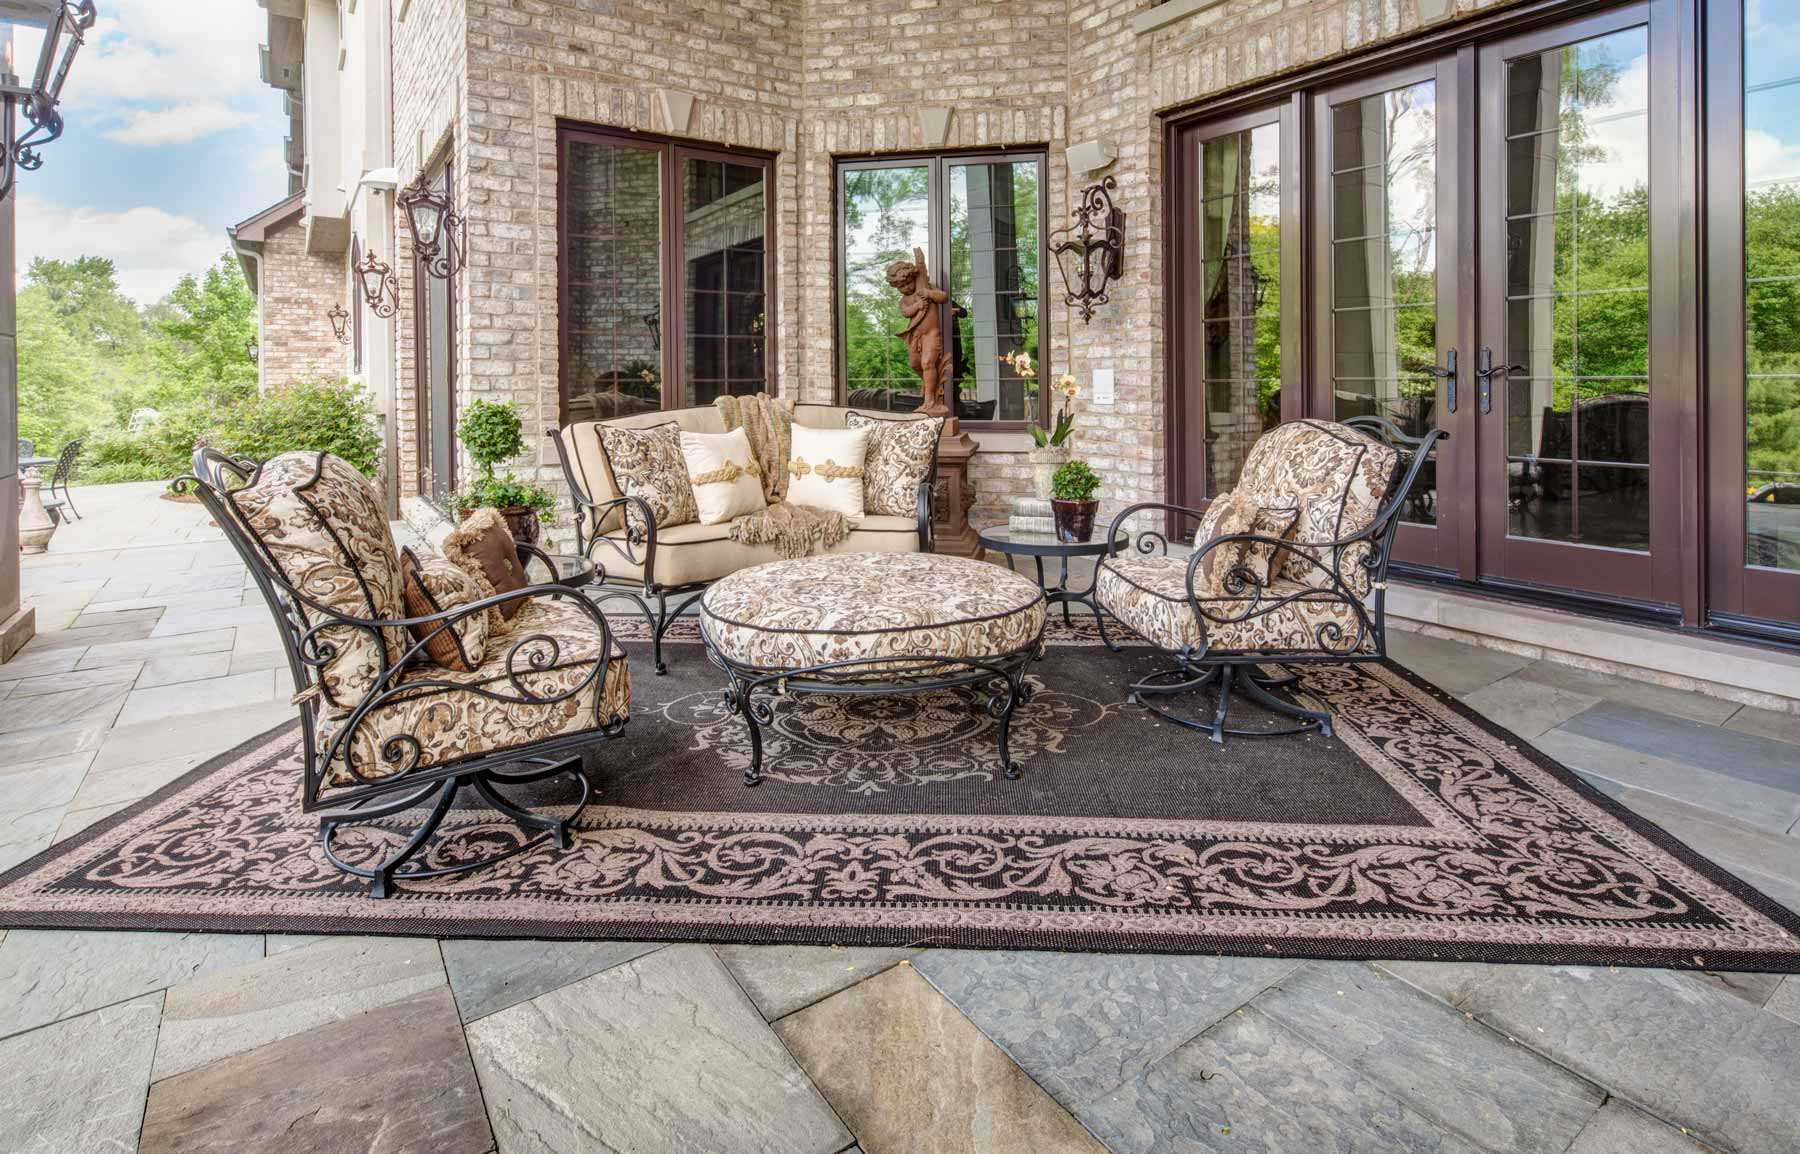 Luxury outdoor patio furniture and rug for Luxury garden furniture